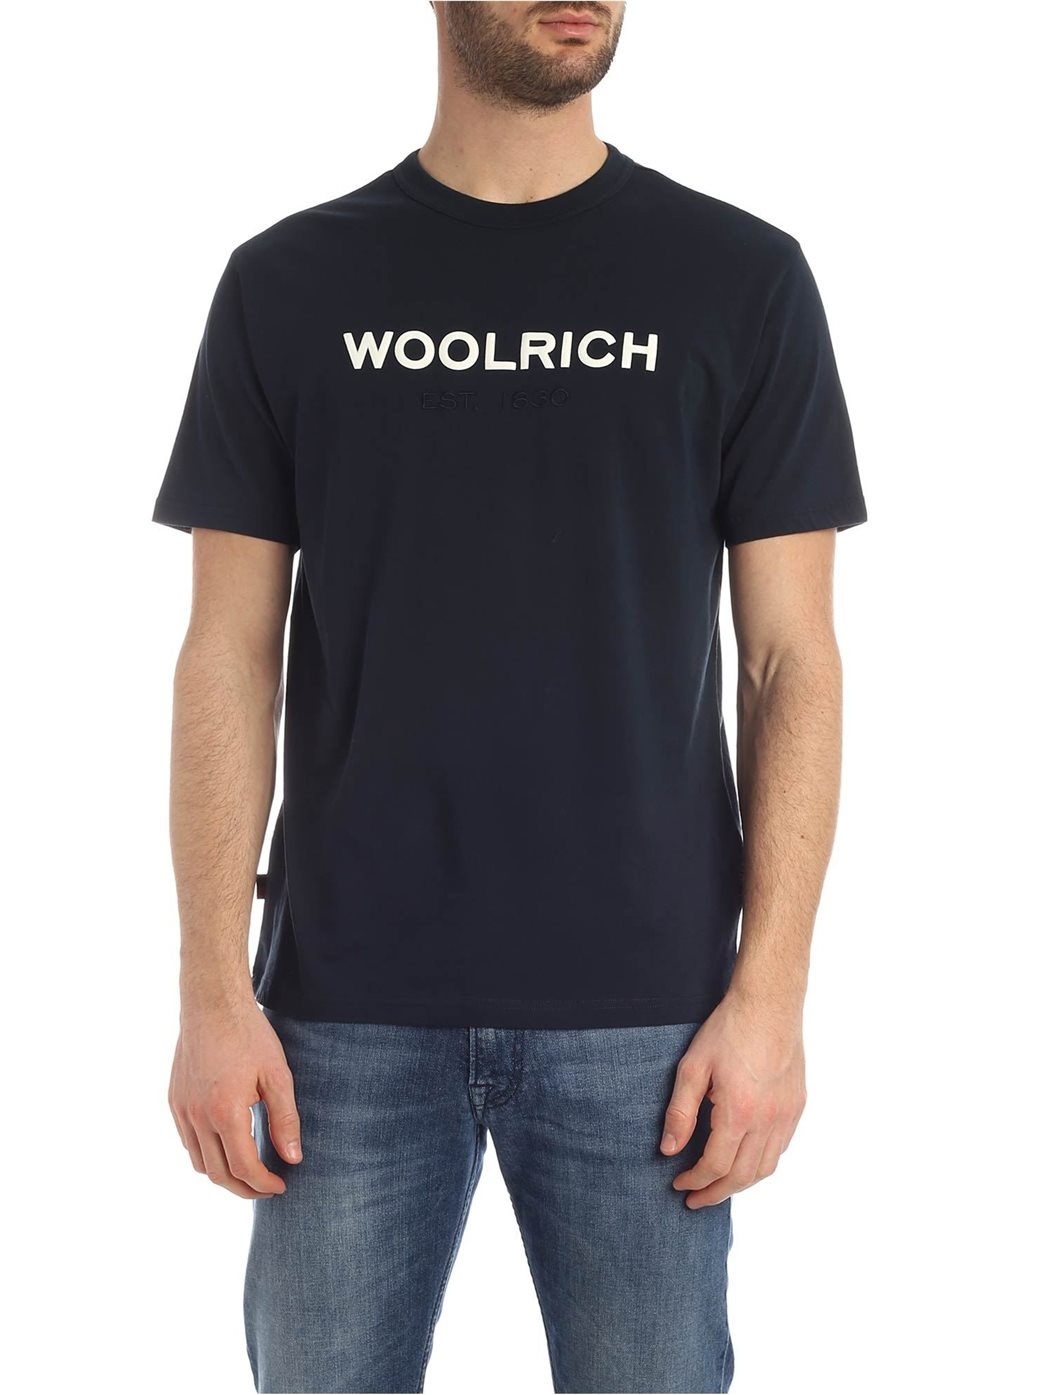 WOOLRICH wote0024mr 3989 T-SHIRT